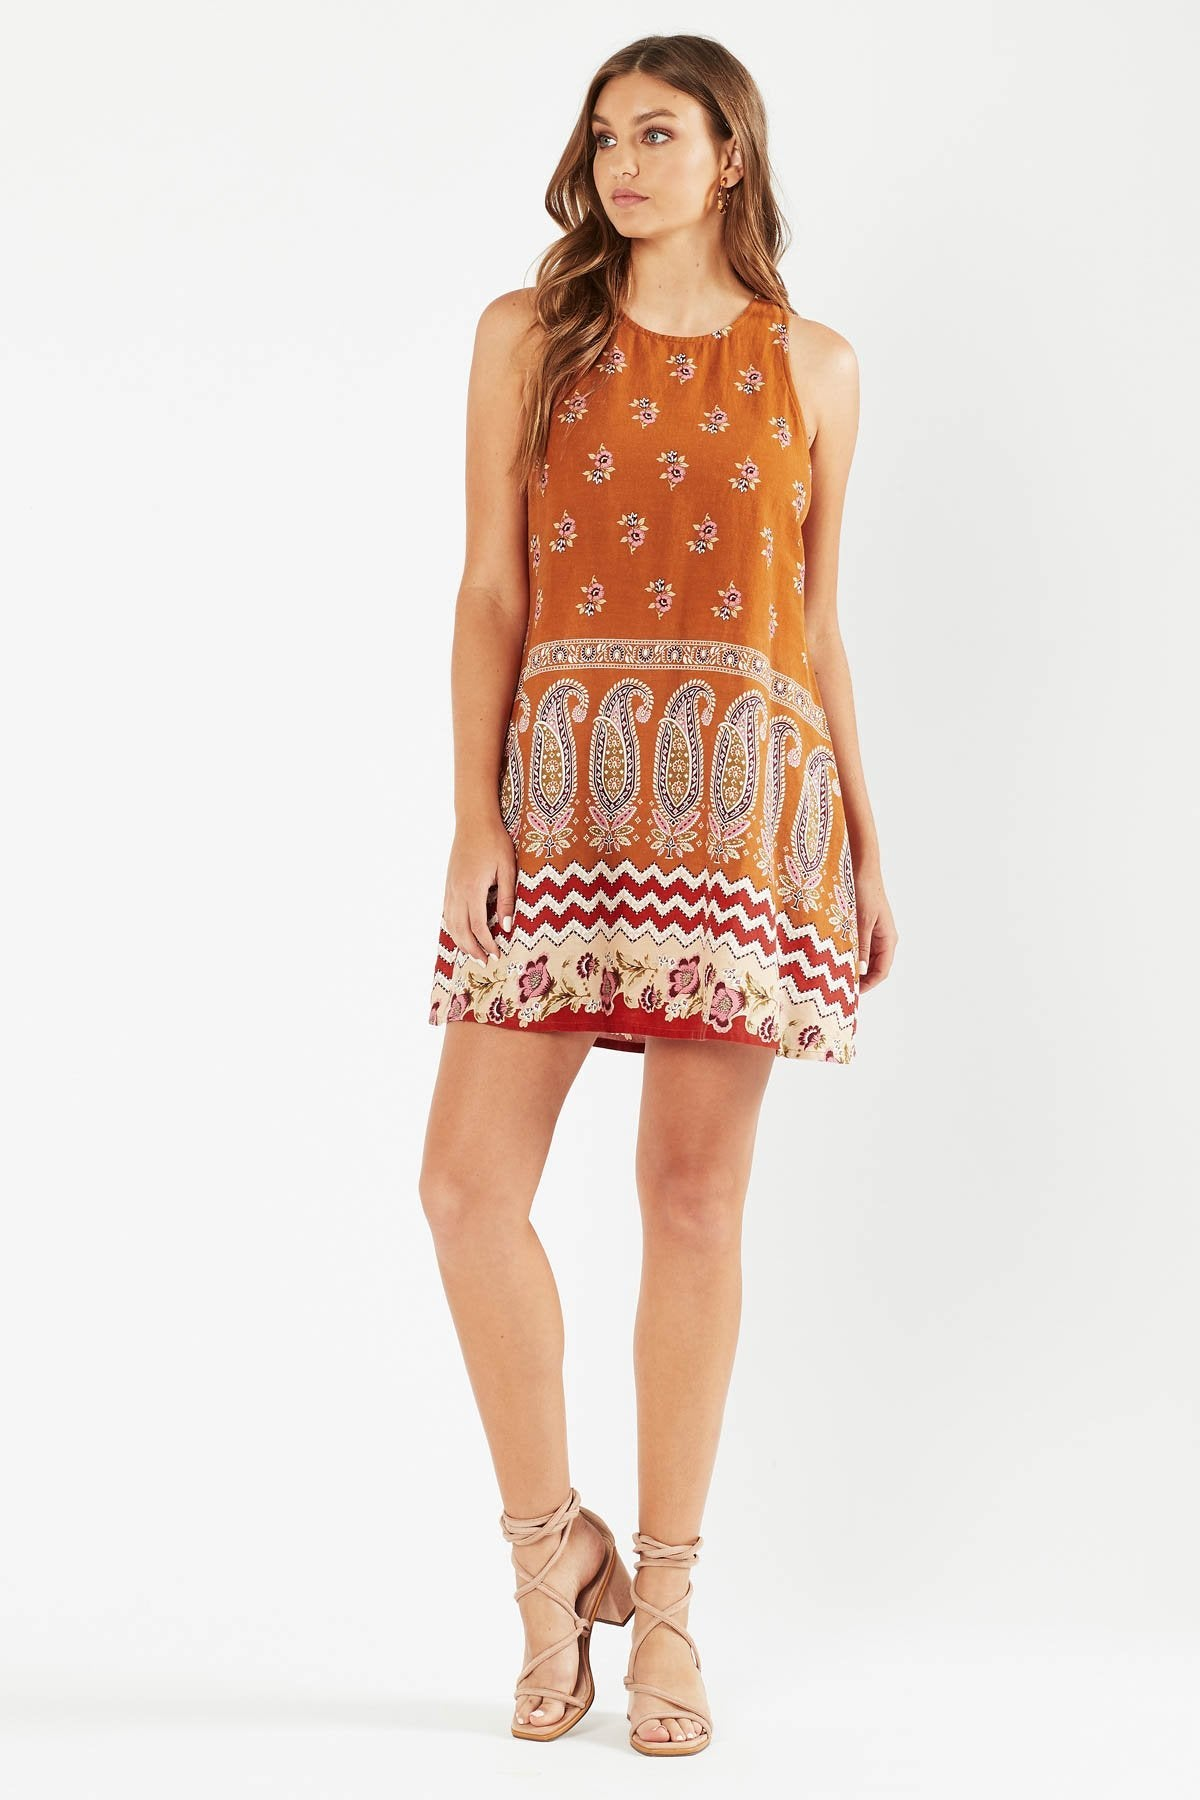 Tigerlily Womens Heloise A-Line Mini Dress - Rust